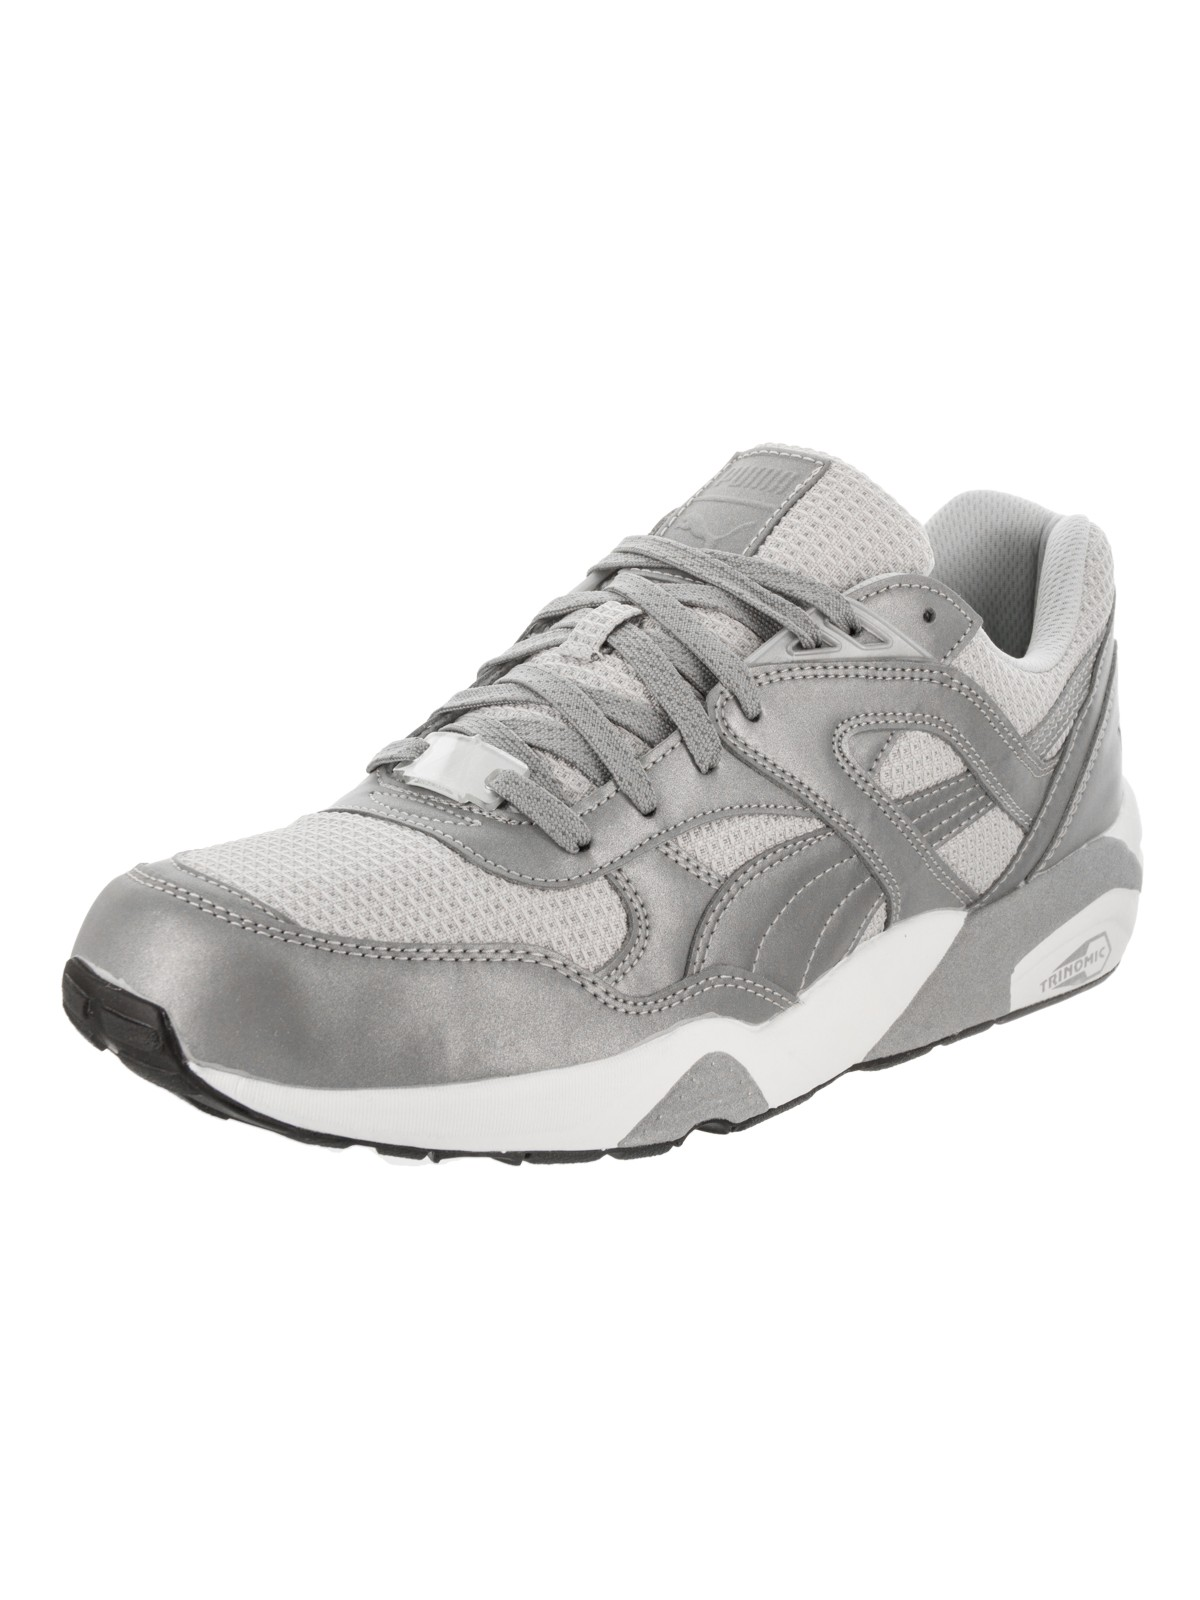 Puma R698 Reflective Men  Round Toe Synthetic Silver Sneakers